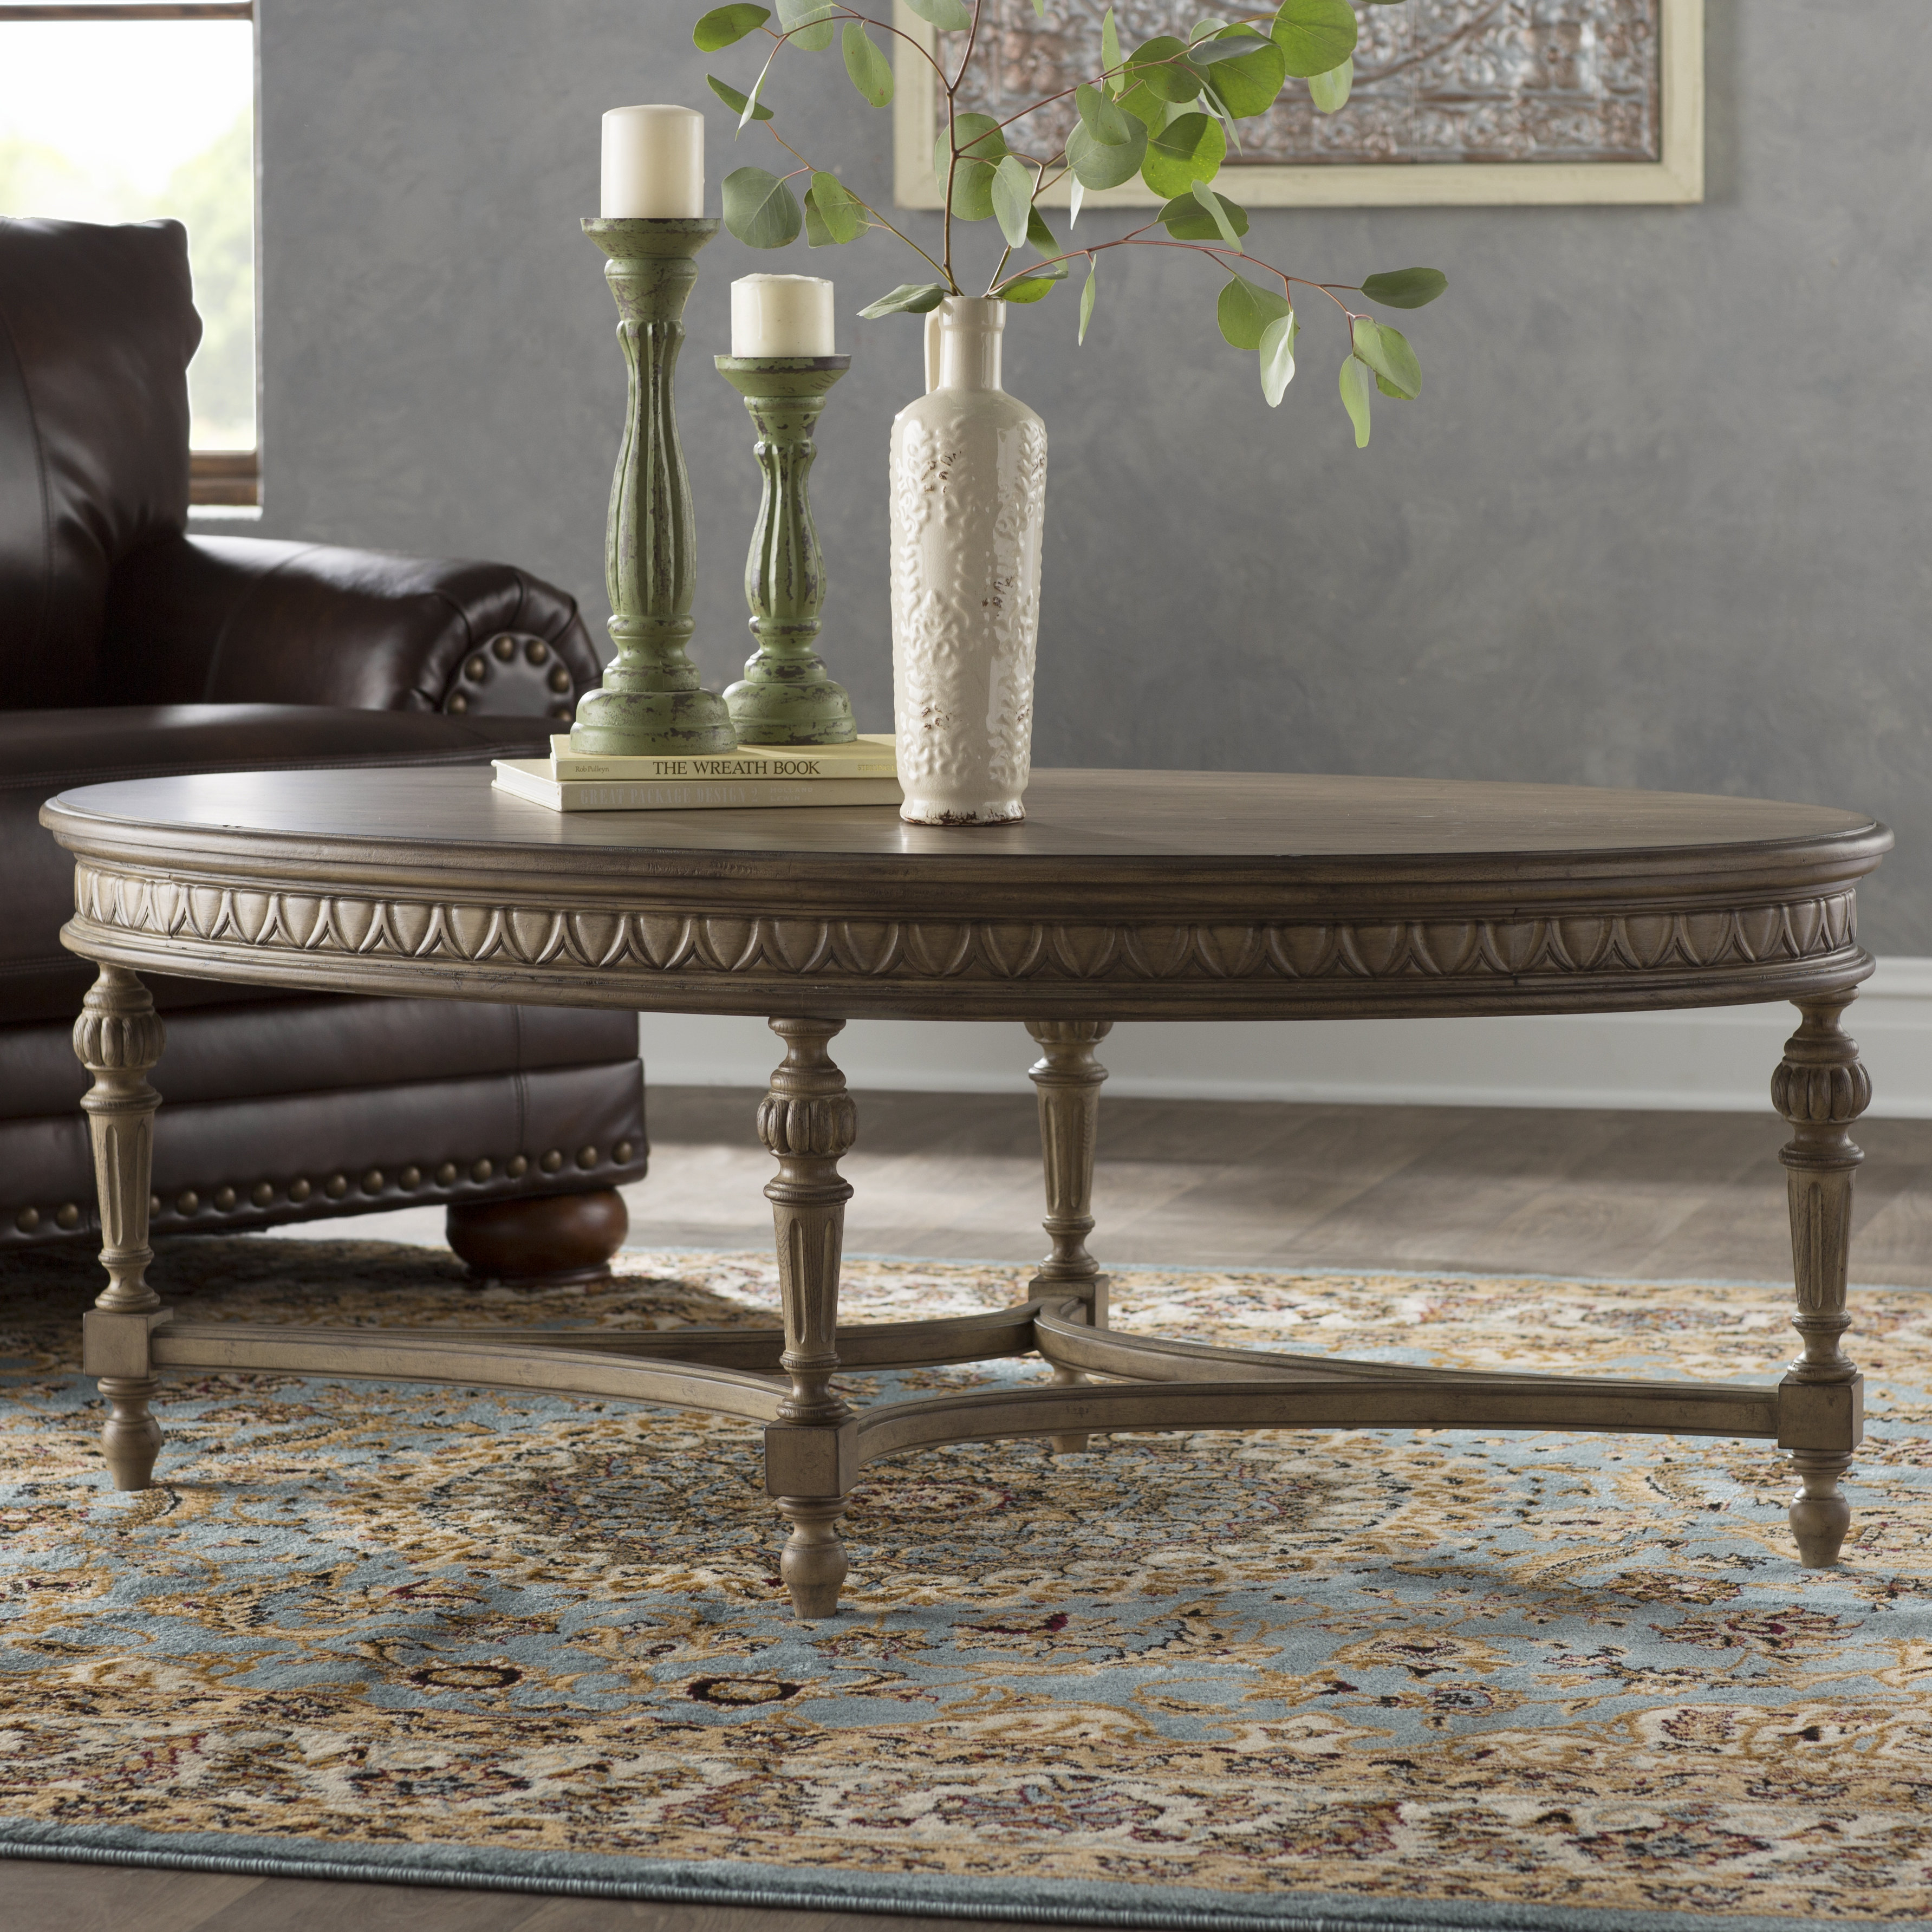 Queener Coffee Table Within Most Recently Released Queener 5 Piece Dining Sets (View 13 of 20)